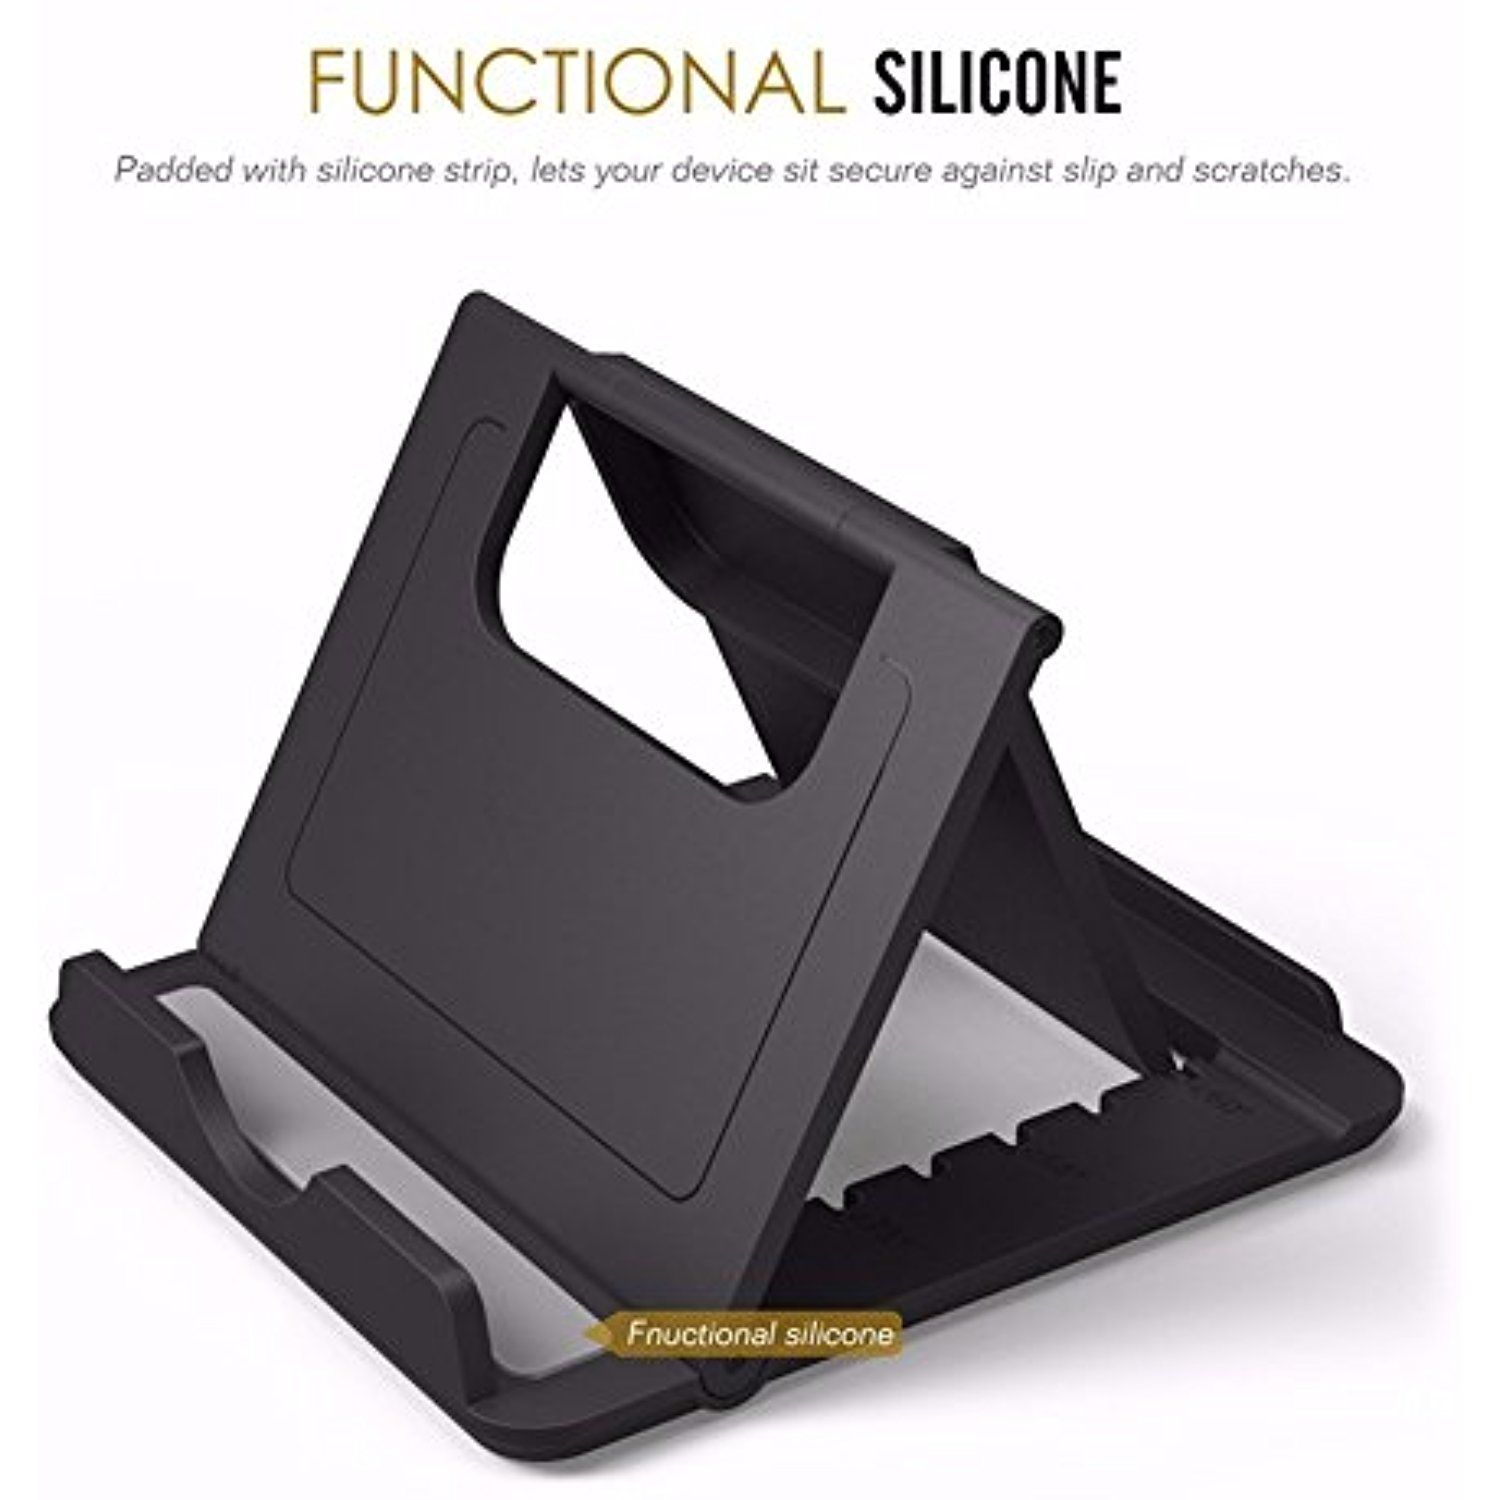 Black Foldable Desk Phone Holder for iPhone 7 Plus iPad Xiaomi redmi 3 Samsung Mobile Holder Desktop Stands Hands Free GPS Racks Read more reviews of the